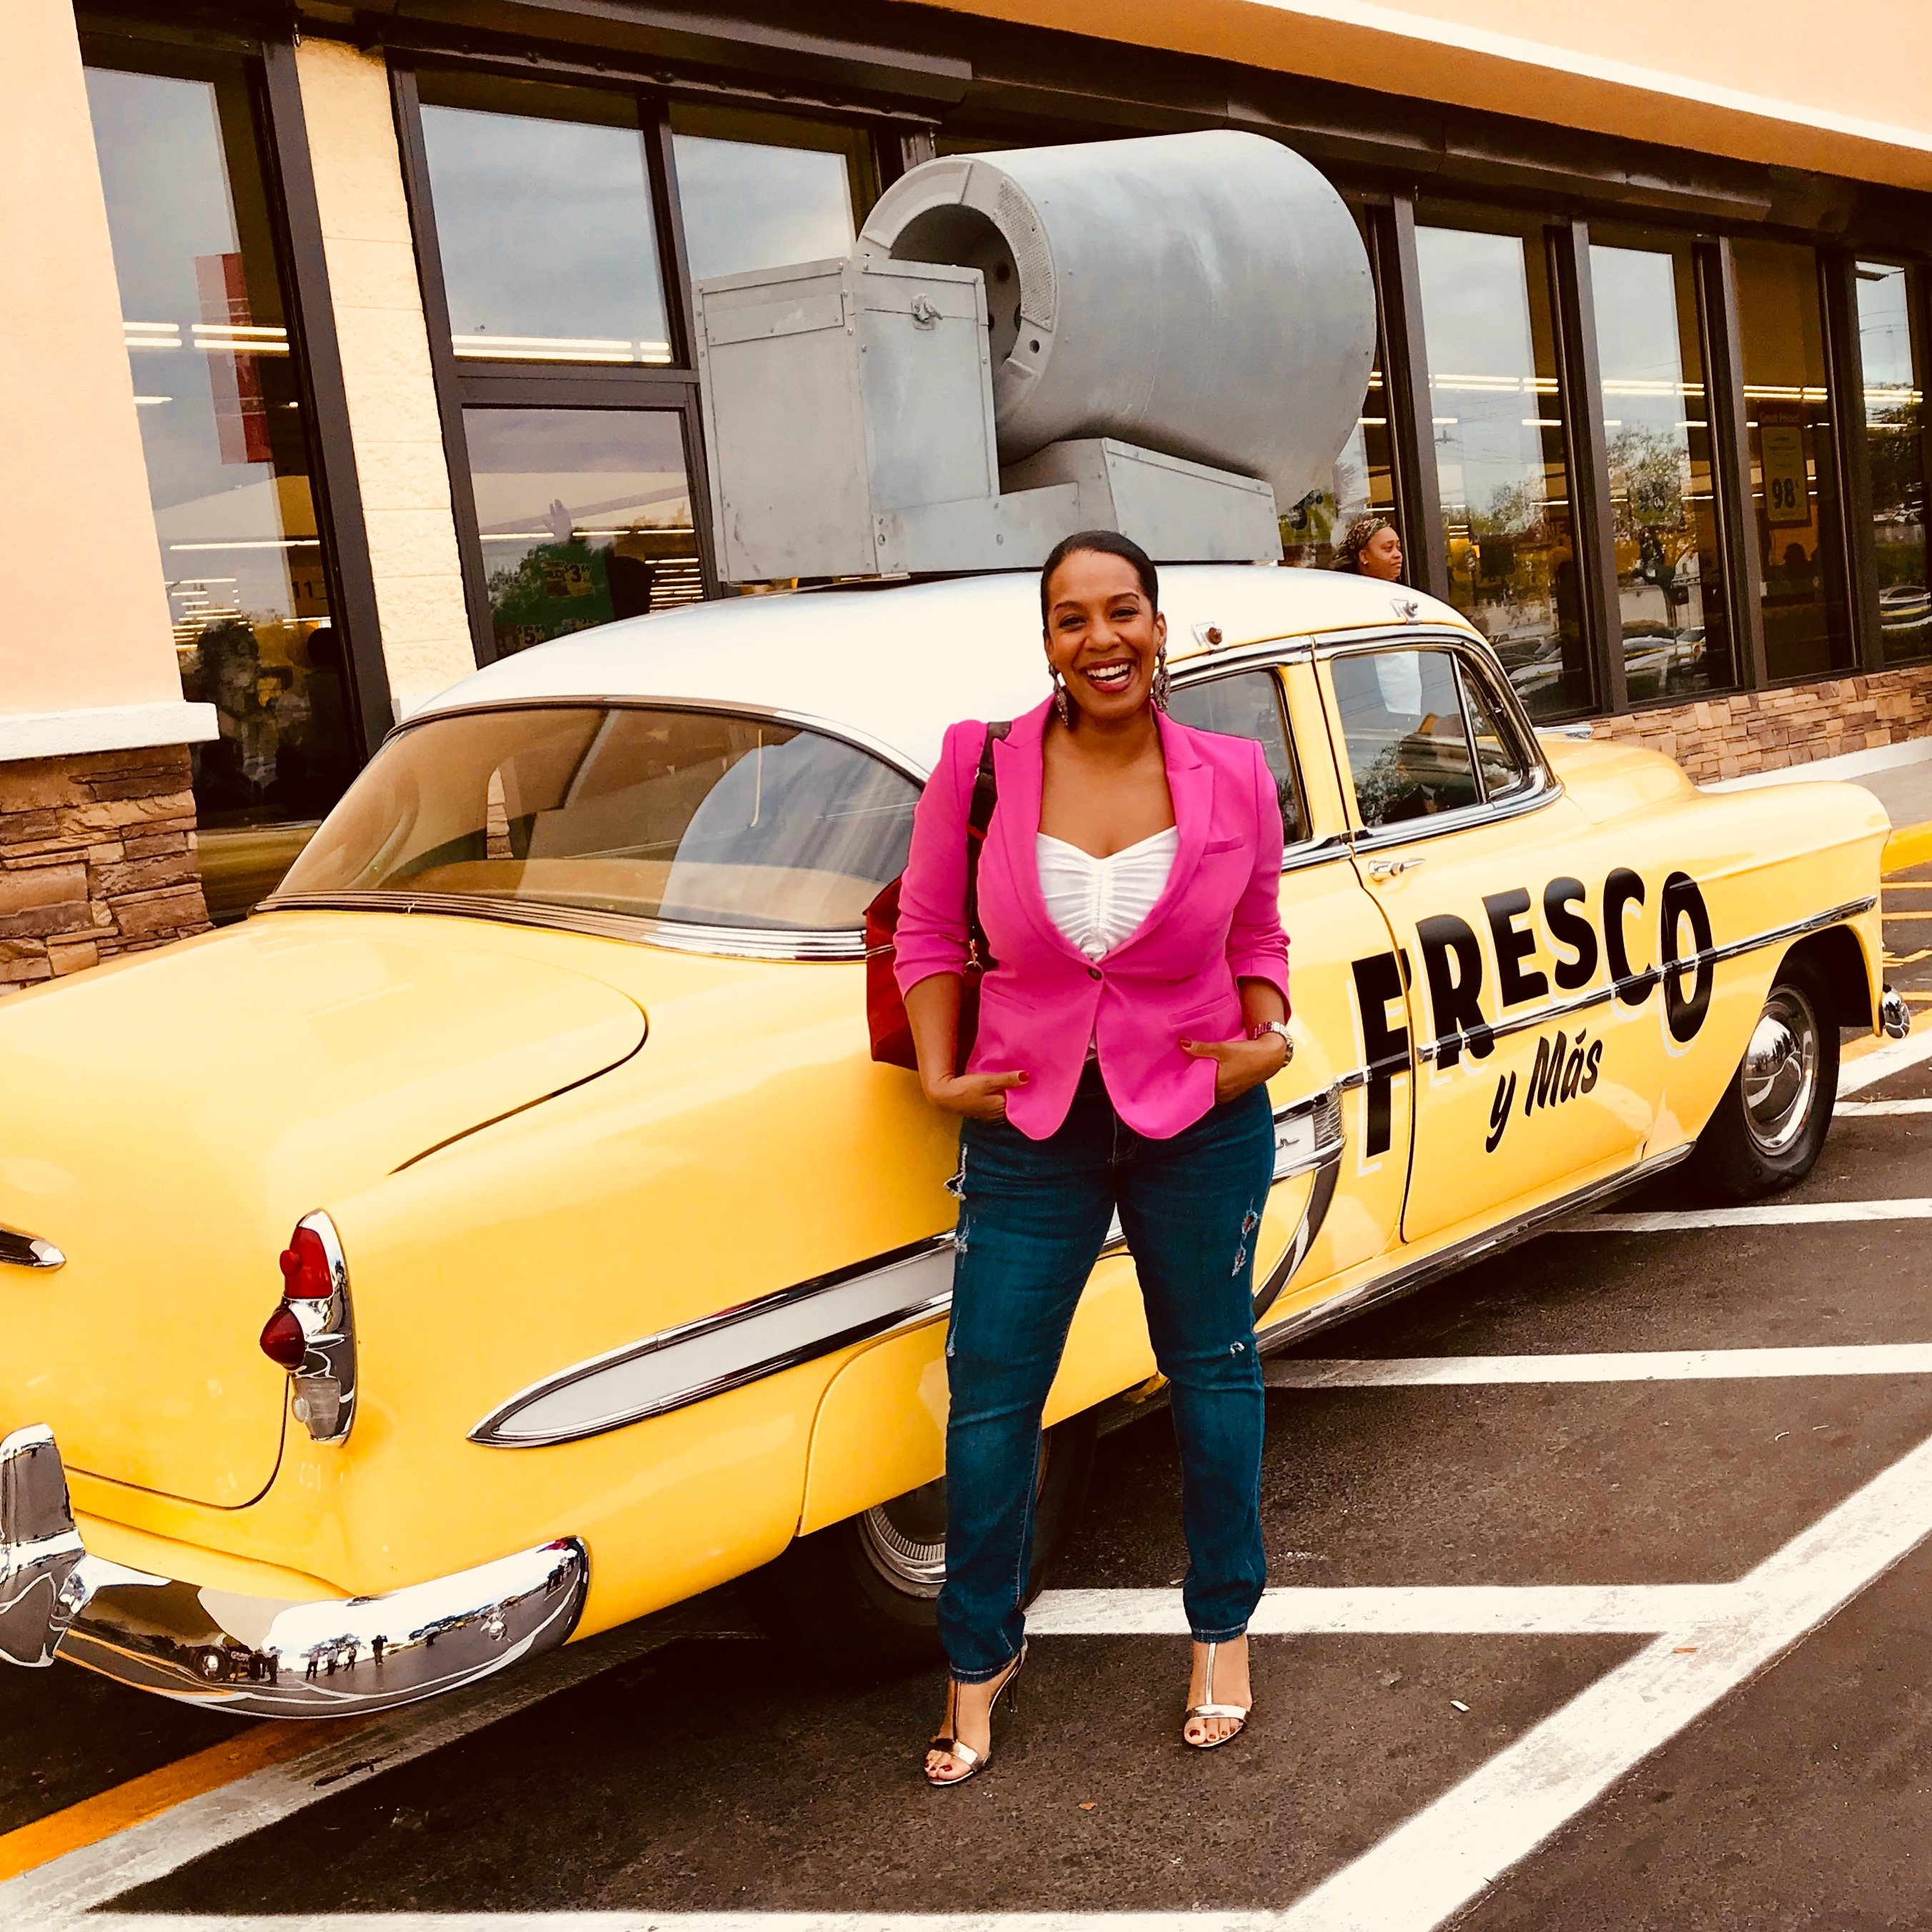 Fresco y Mas – A Caribbean delight opens in the heart of Lauderhill.